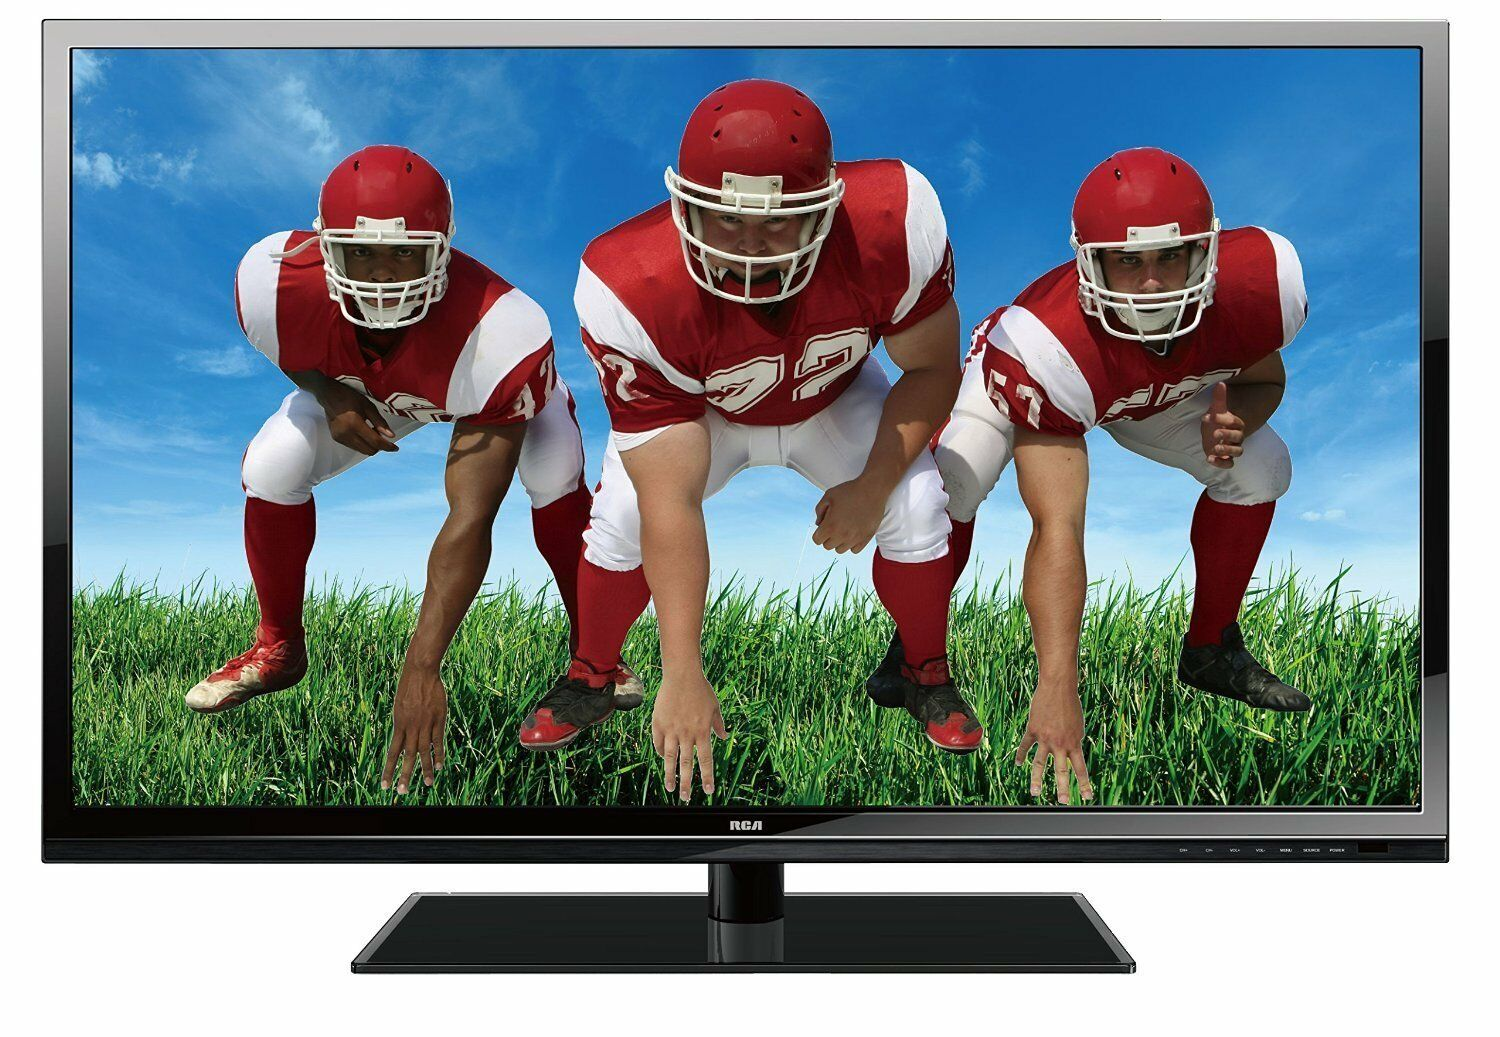 RCA RLDED4633A 46-Inch 60 HZ 1080p LED Full HD TV $800 AS IS